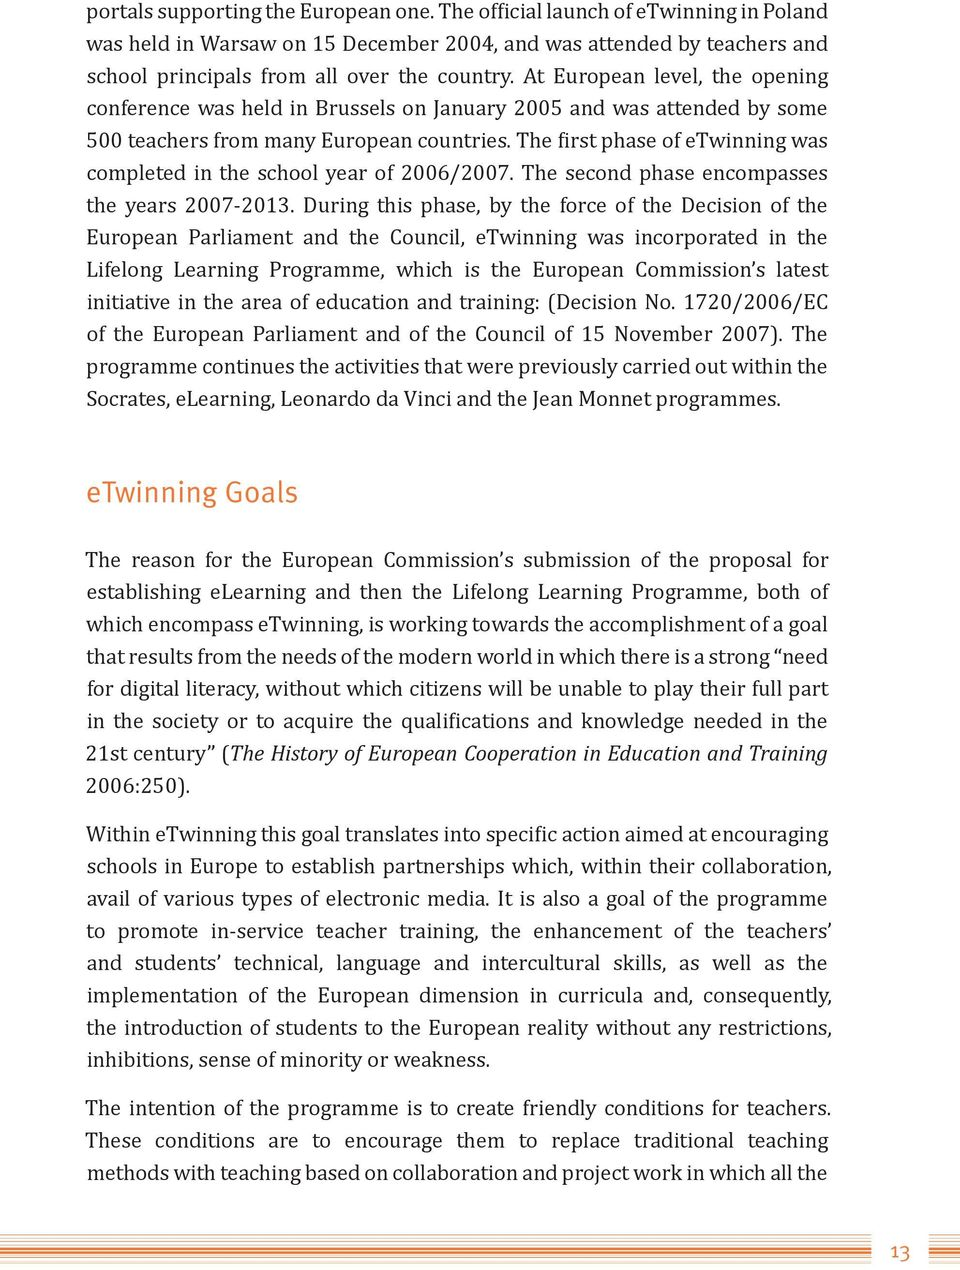 The first phase of etwinning was completed in the school year of 2006/2007. The second phase encompasses the years 2007-2013.